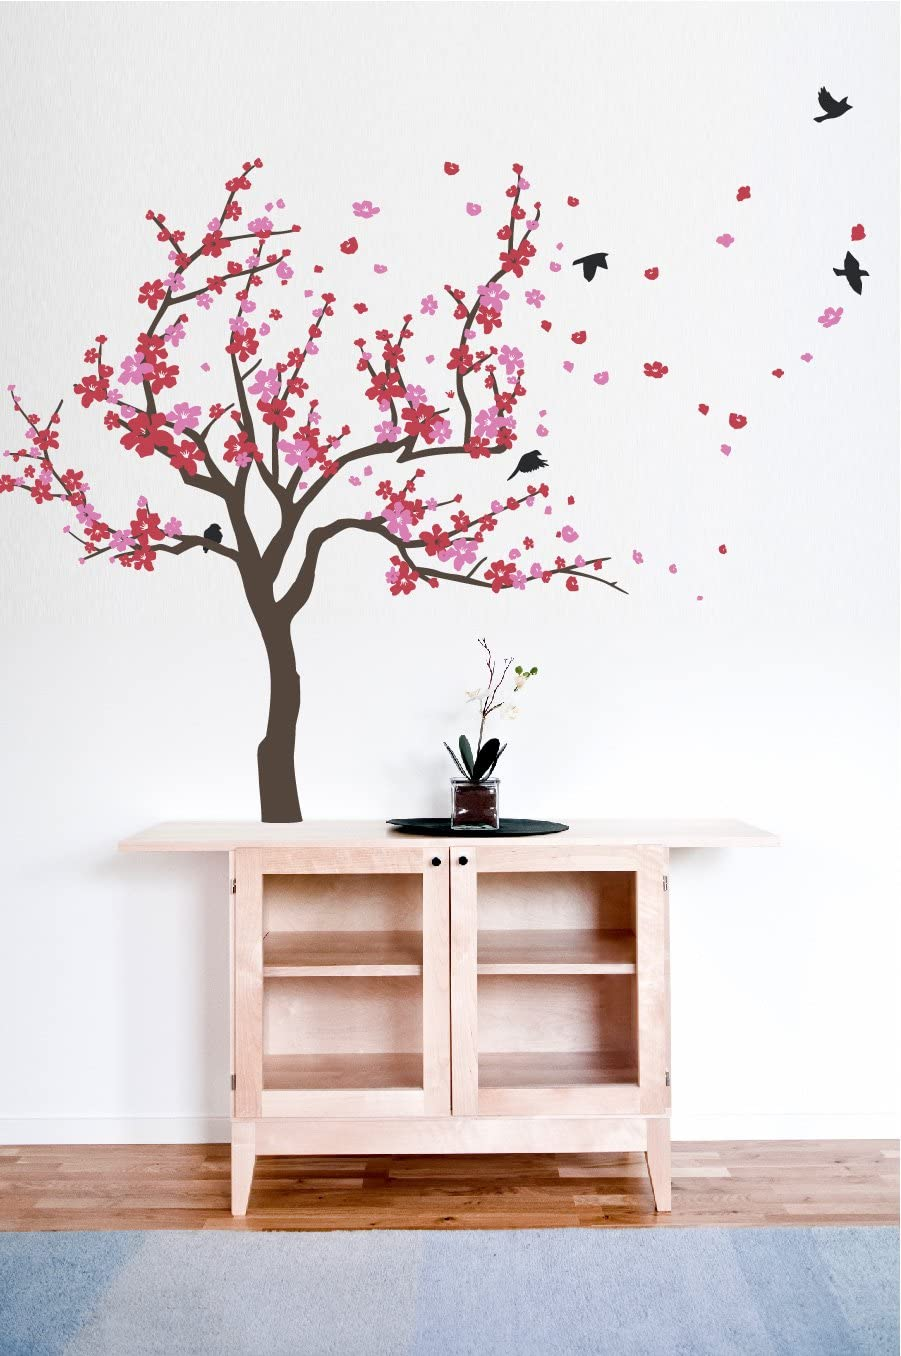 Japanese Cherry Blossom Tree And Birds Wall Decal Sticker For Flower Baby Nursery Room Decor Art Red Pink 38x59 Inches Home Kitchen